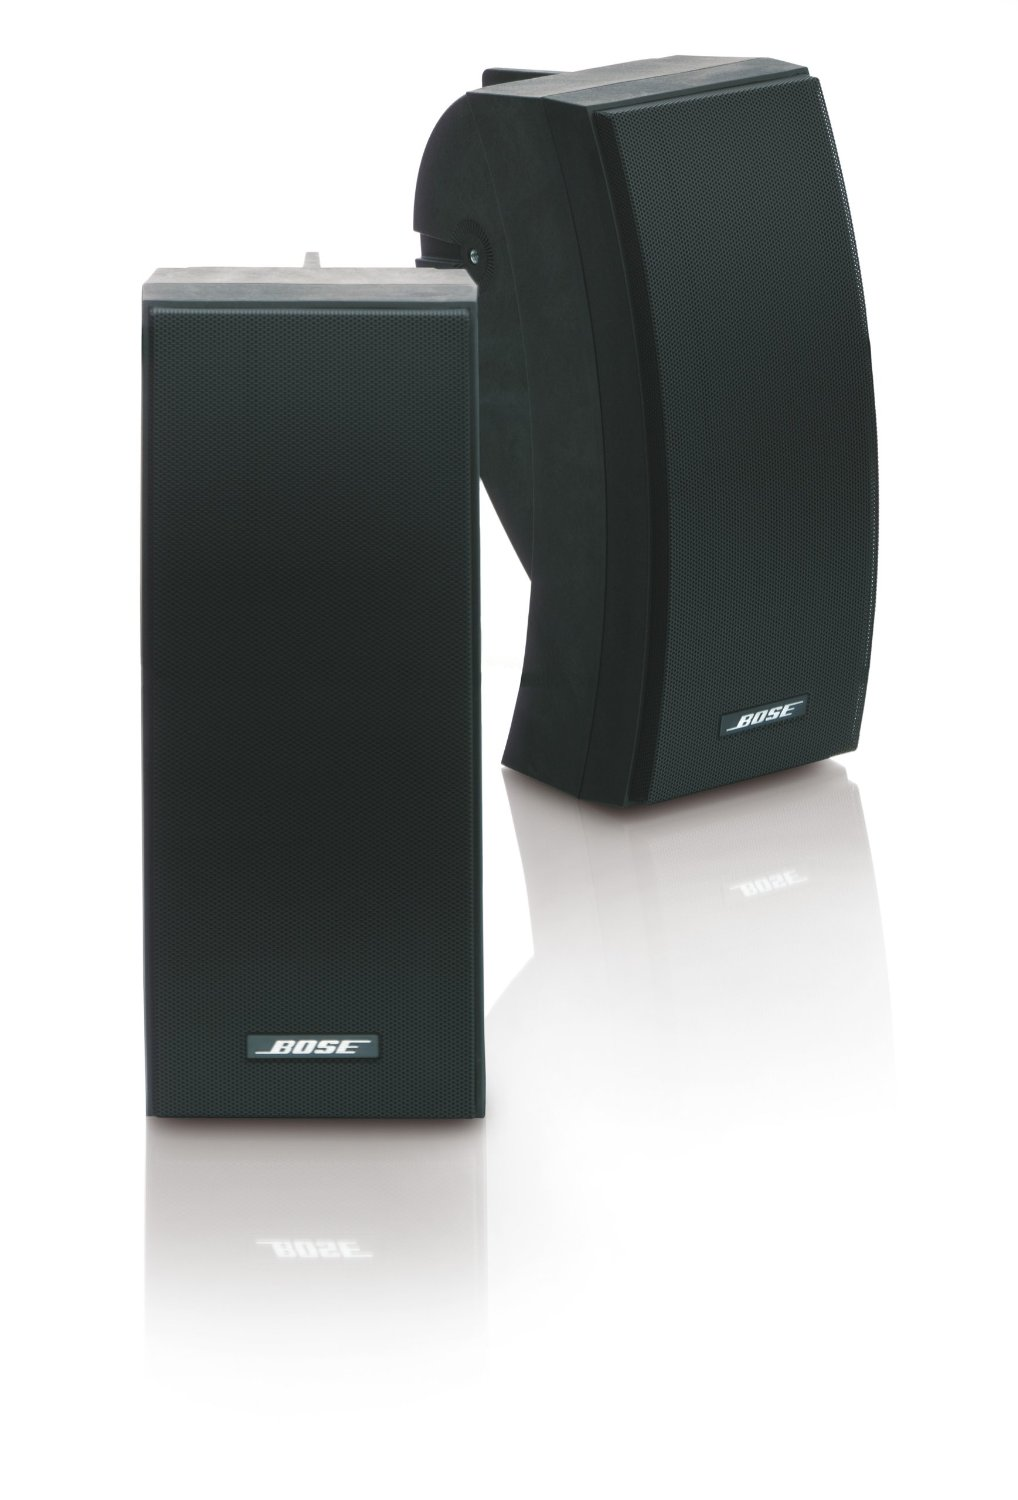 Bose 251 Environmental Outdoor Speakers Outdoor Speaker Supply